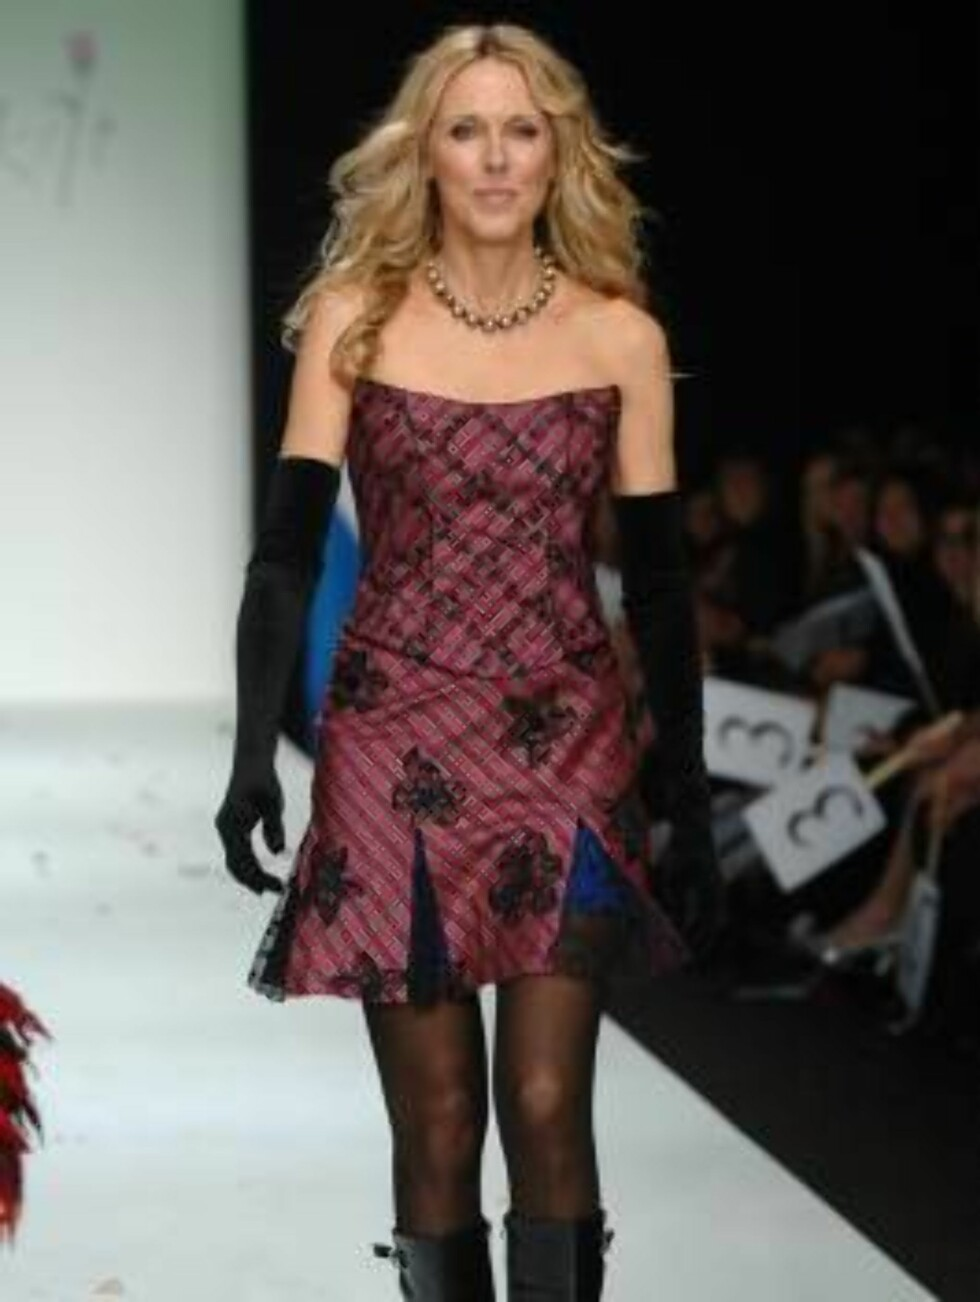 LOS ANGELES 2006-10-14  Alana Stewart attends the 2006 Dressed to  Kilt, an evening of Scottish fashion to kick-off the Mercedes-Benz fashion week. Los Angeles, October 14, 2006. (Pictured: Alana Stewart ).   Photo: Lionel Hahn/AbacaUsa  Code: 4001/A34213 Foto: Stella Pictures